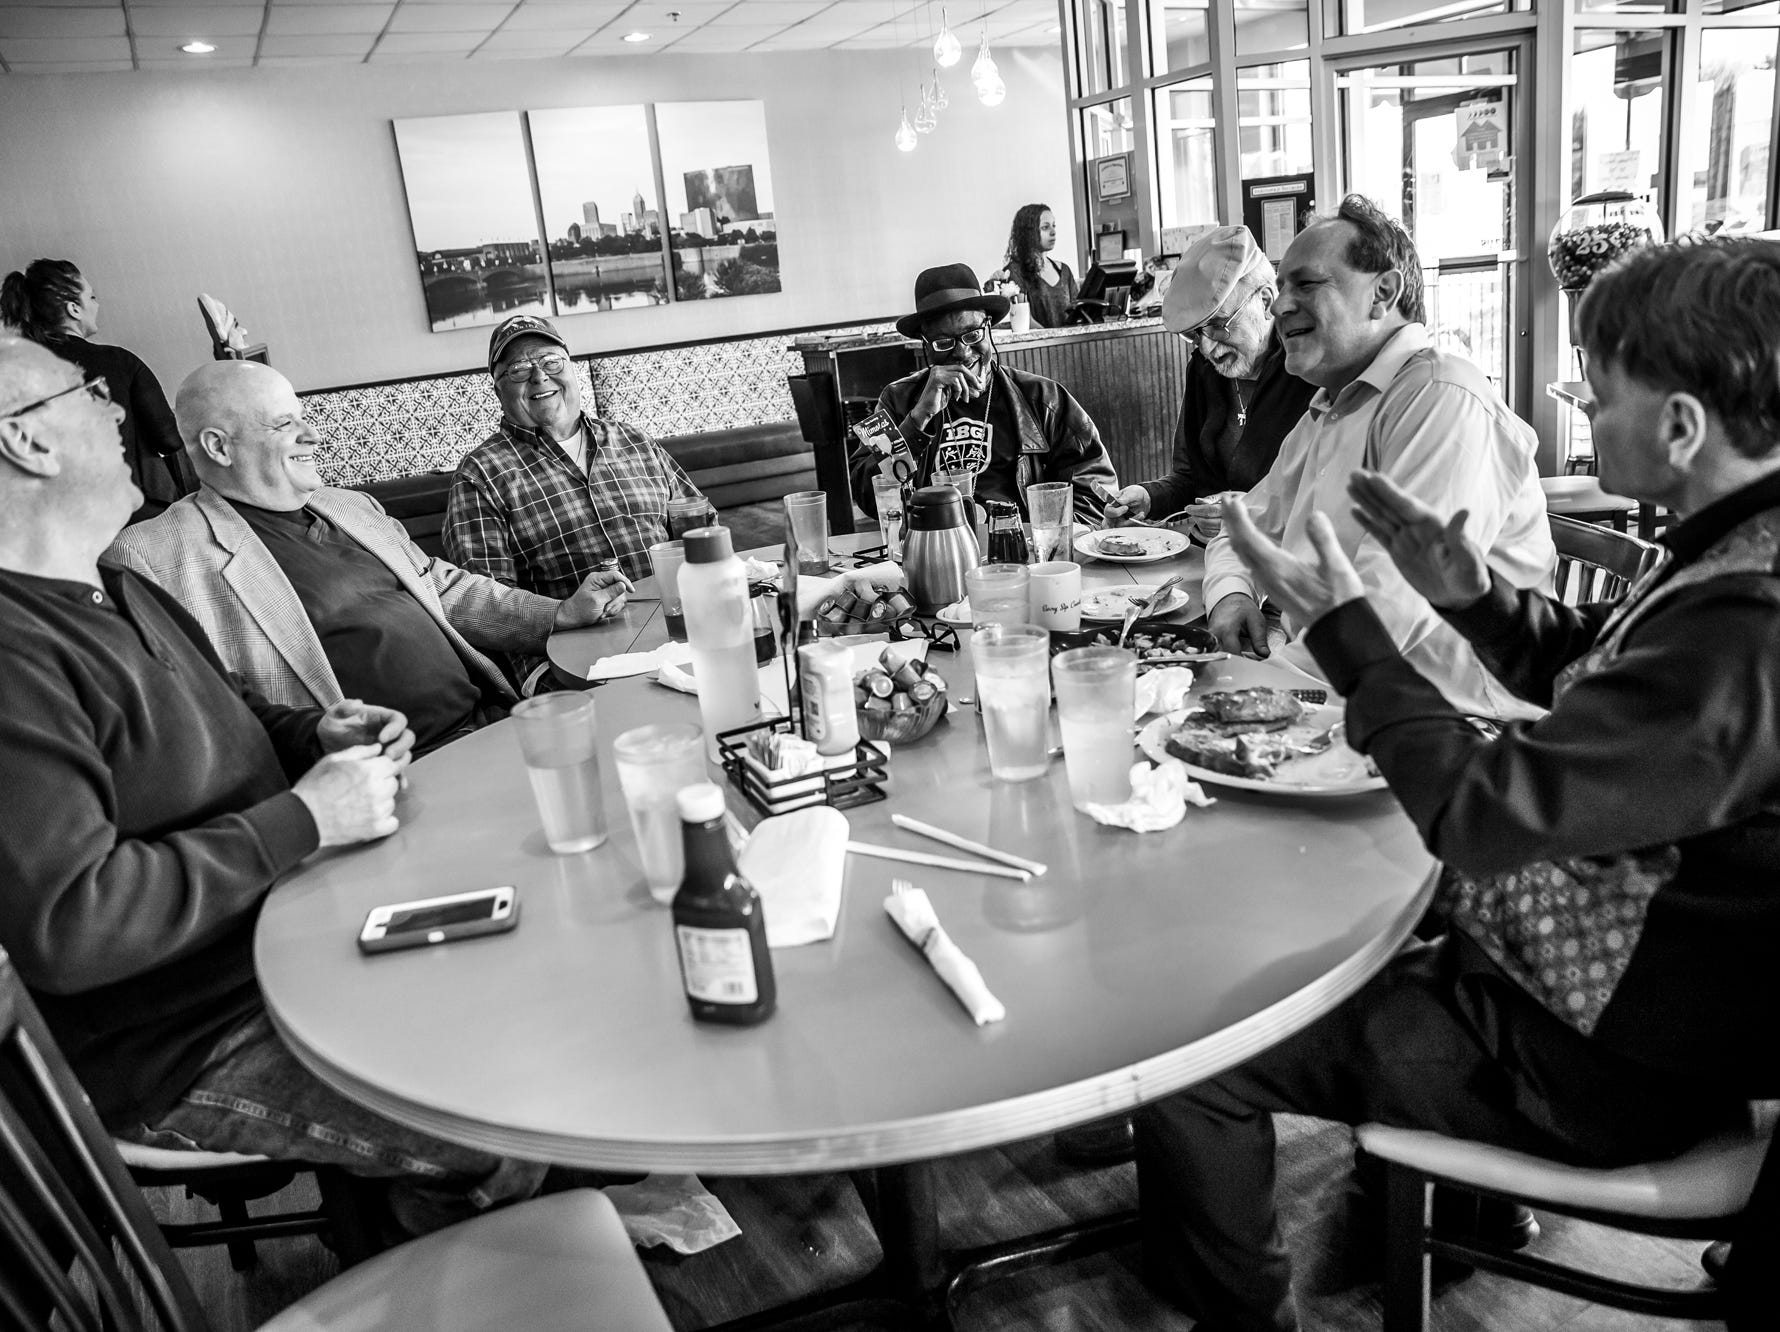 A 30-year tradition, Sugar Ray Seales and a group of his friends grab lunch at Lincoln Square Pancake House on 56th Street in Indianapolis on Thursday, April 5, 2018. From left, Keith Boggs, president of Indiana Golden Gloves, Bill Cowell, Frank Evans, former Indiana commission's director of boxing, Fred Berns, a boxing promoter for 40 years, longtime sports photographer Scott Romer and Craig Houk, a former professional boxer, laugh with Seales, middle, during their lunch. 